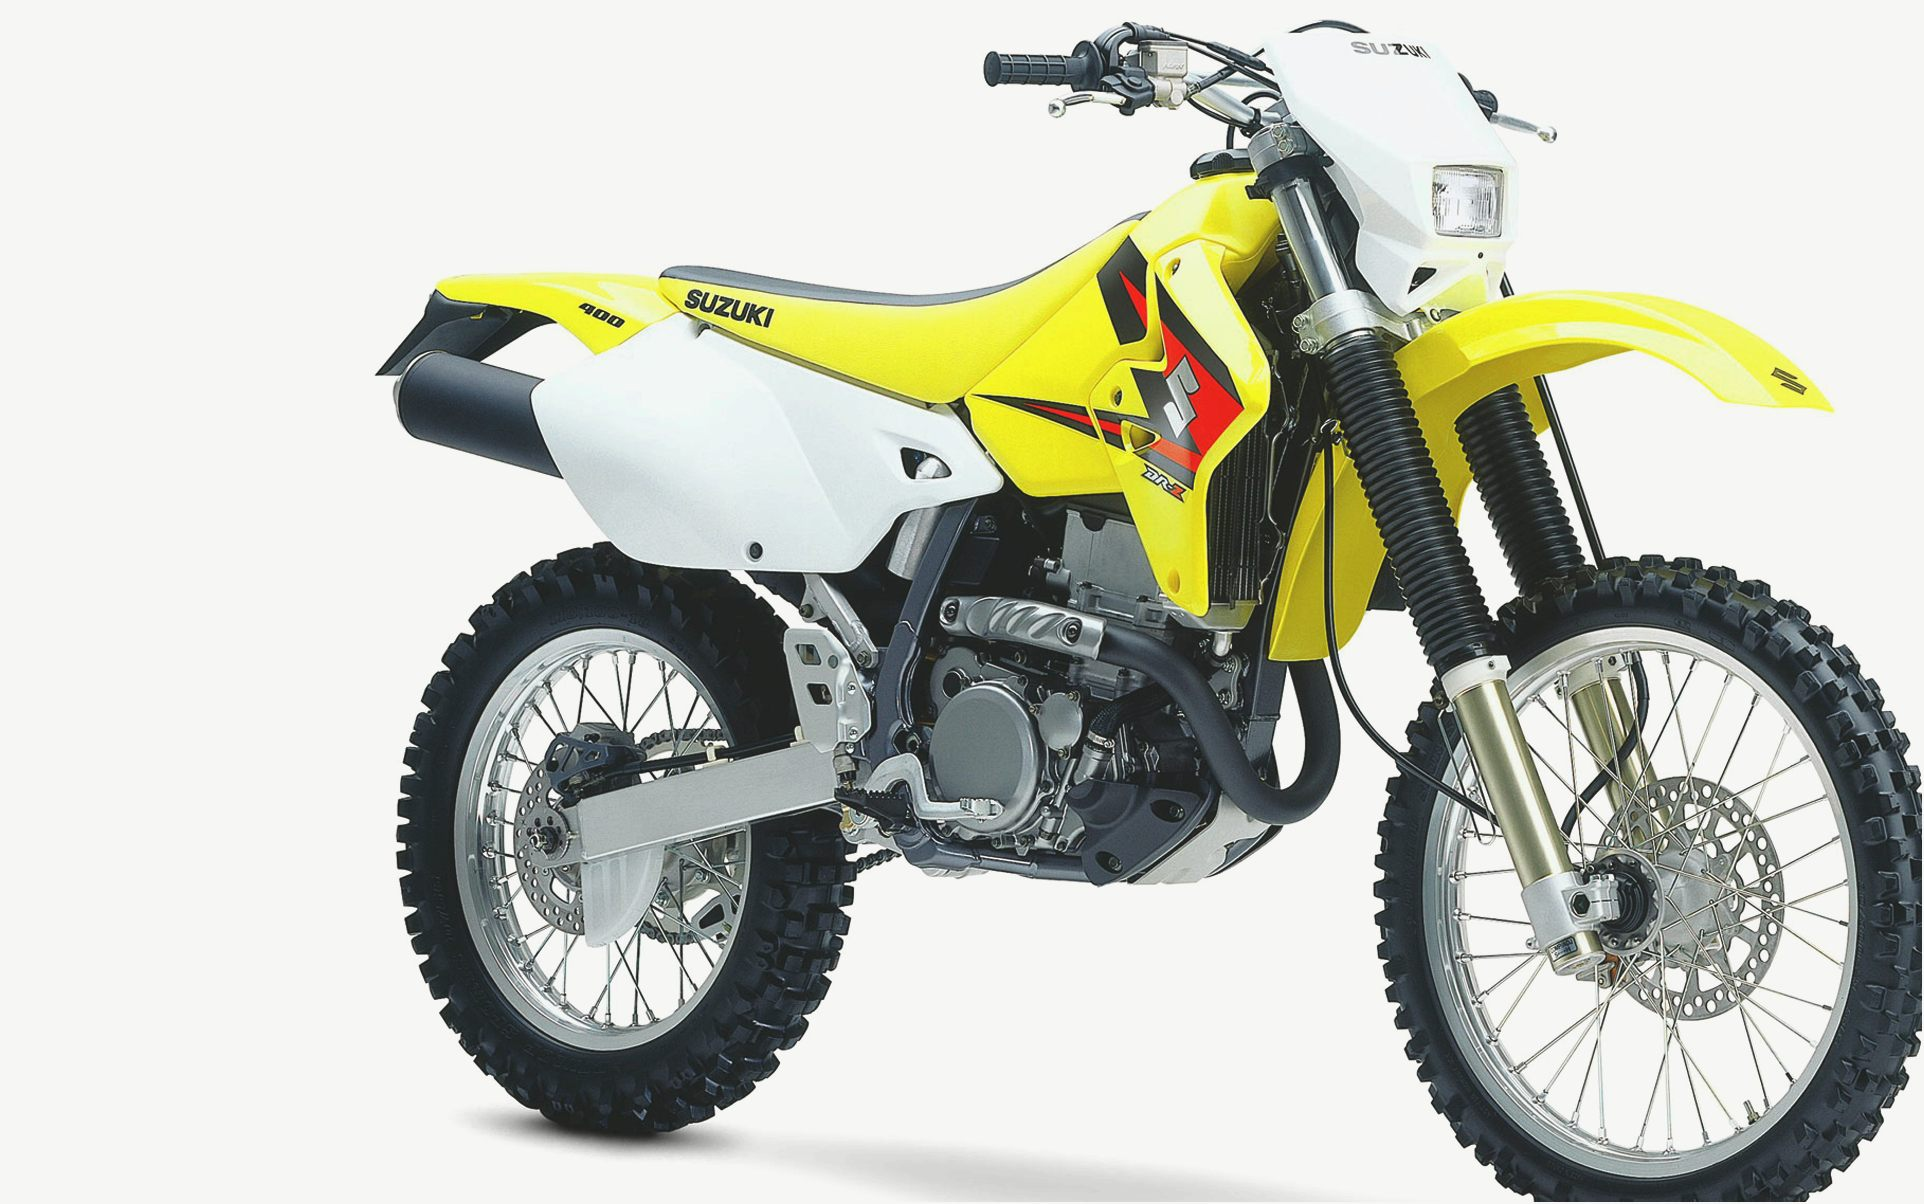 Casami in addition Spring Printables Free 1832877 together with Fz 750 moreover R71 as well Caballero. on motorcycles list